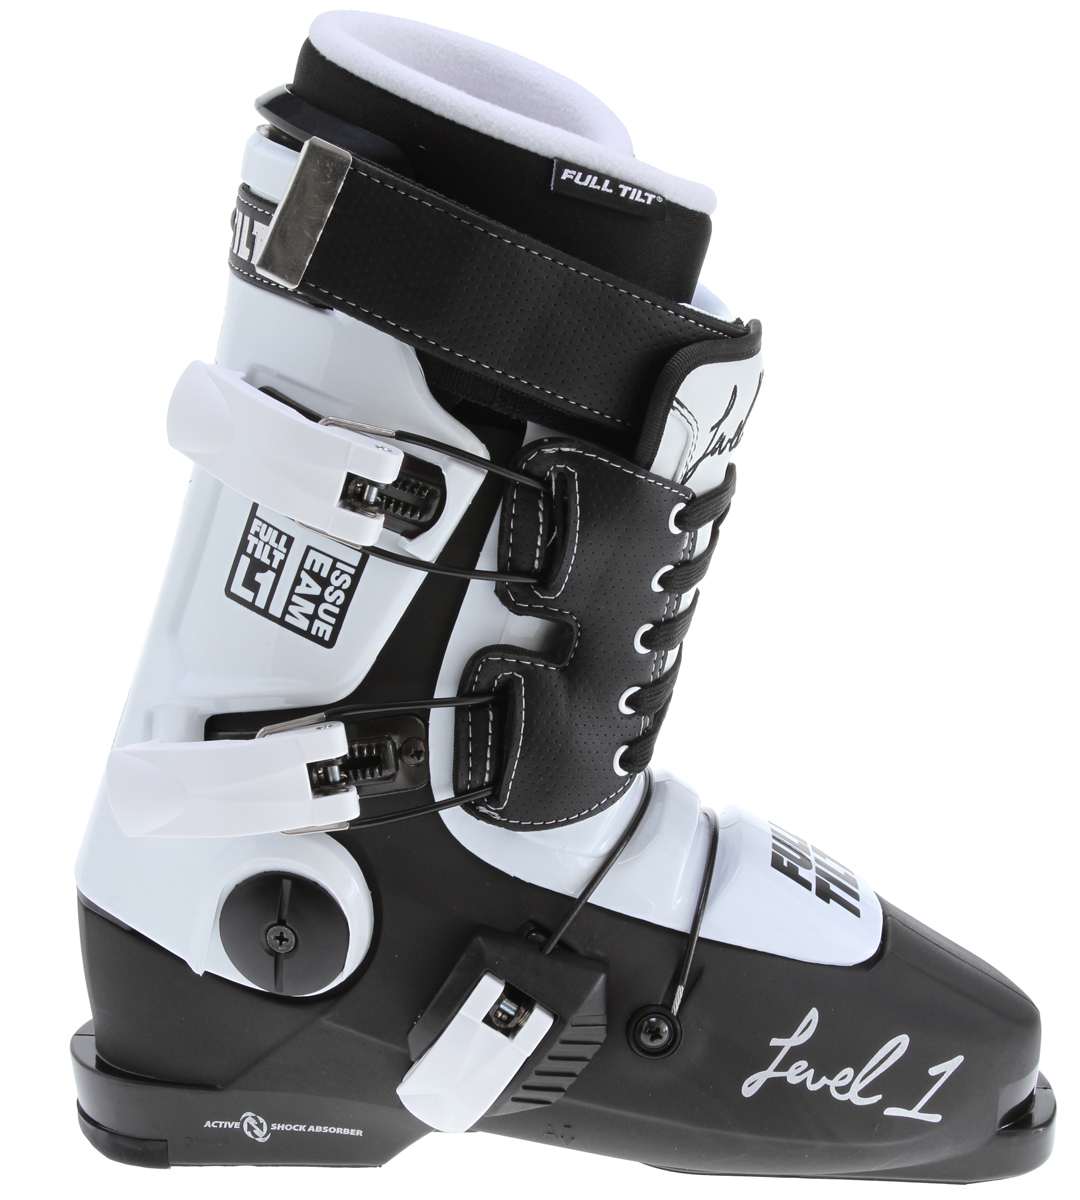 Ski Key Features of the Full Tilt Level 1 Ski Boots: Original Shell 99mm width last Pro Intuition Liner w/Powerwrap & J-Bar #6 Flex / 7 Rib tongue Active Bootboard Nylon Ratchet Buckles - $384.95